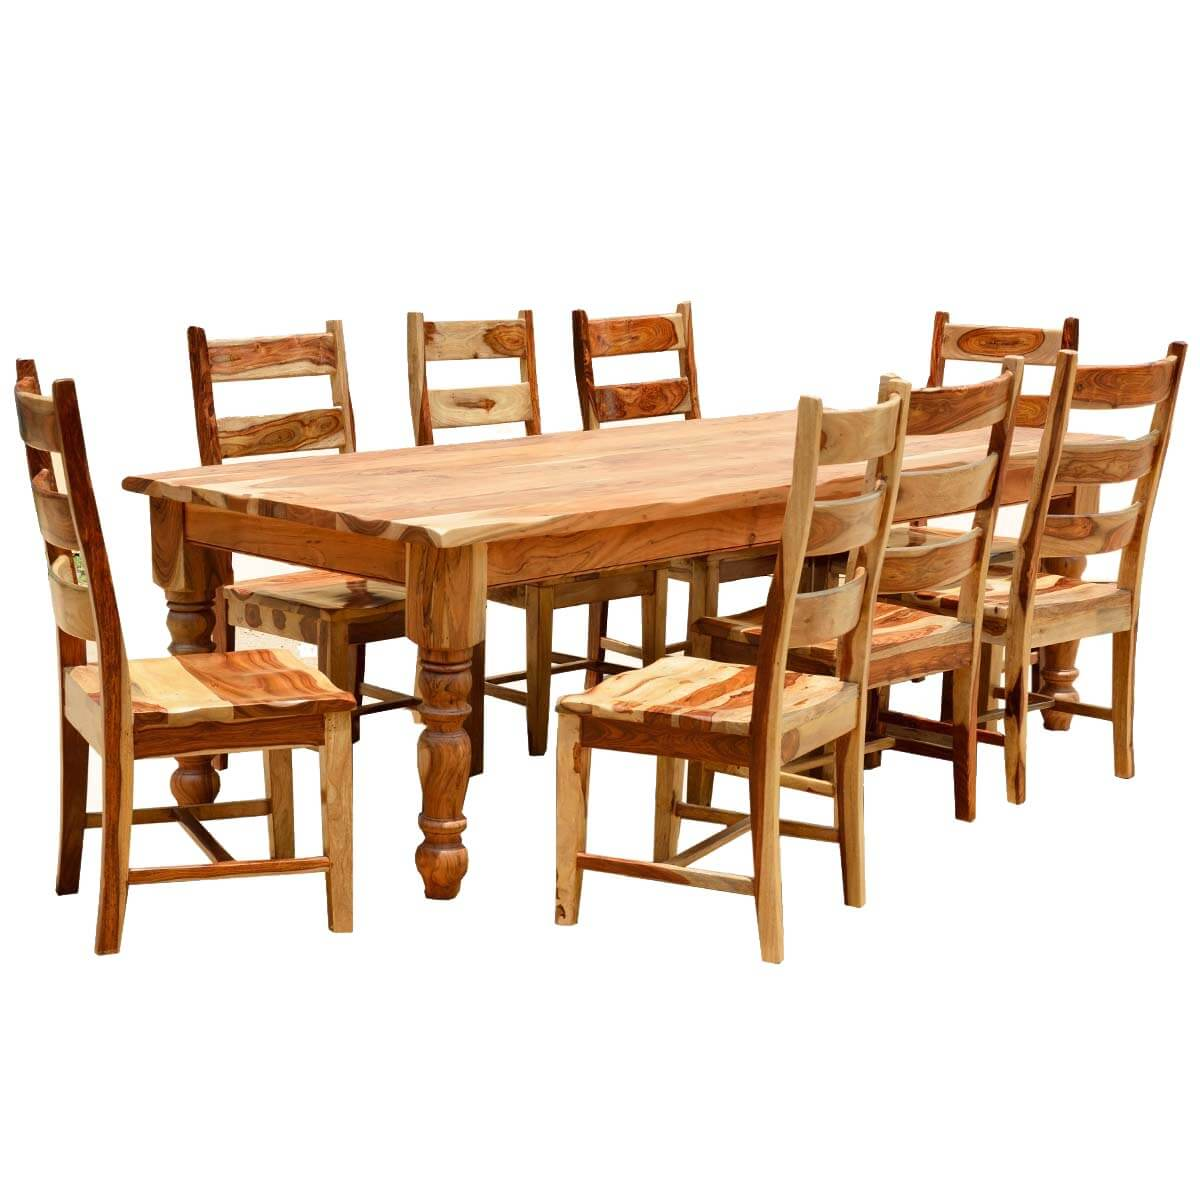 Rustic solid wood farmhouse dining room table chair set - Wooden dining room chairs ...